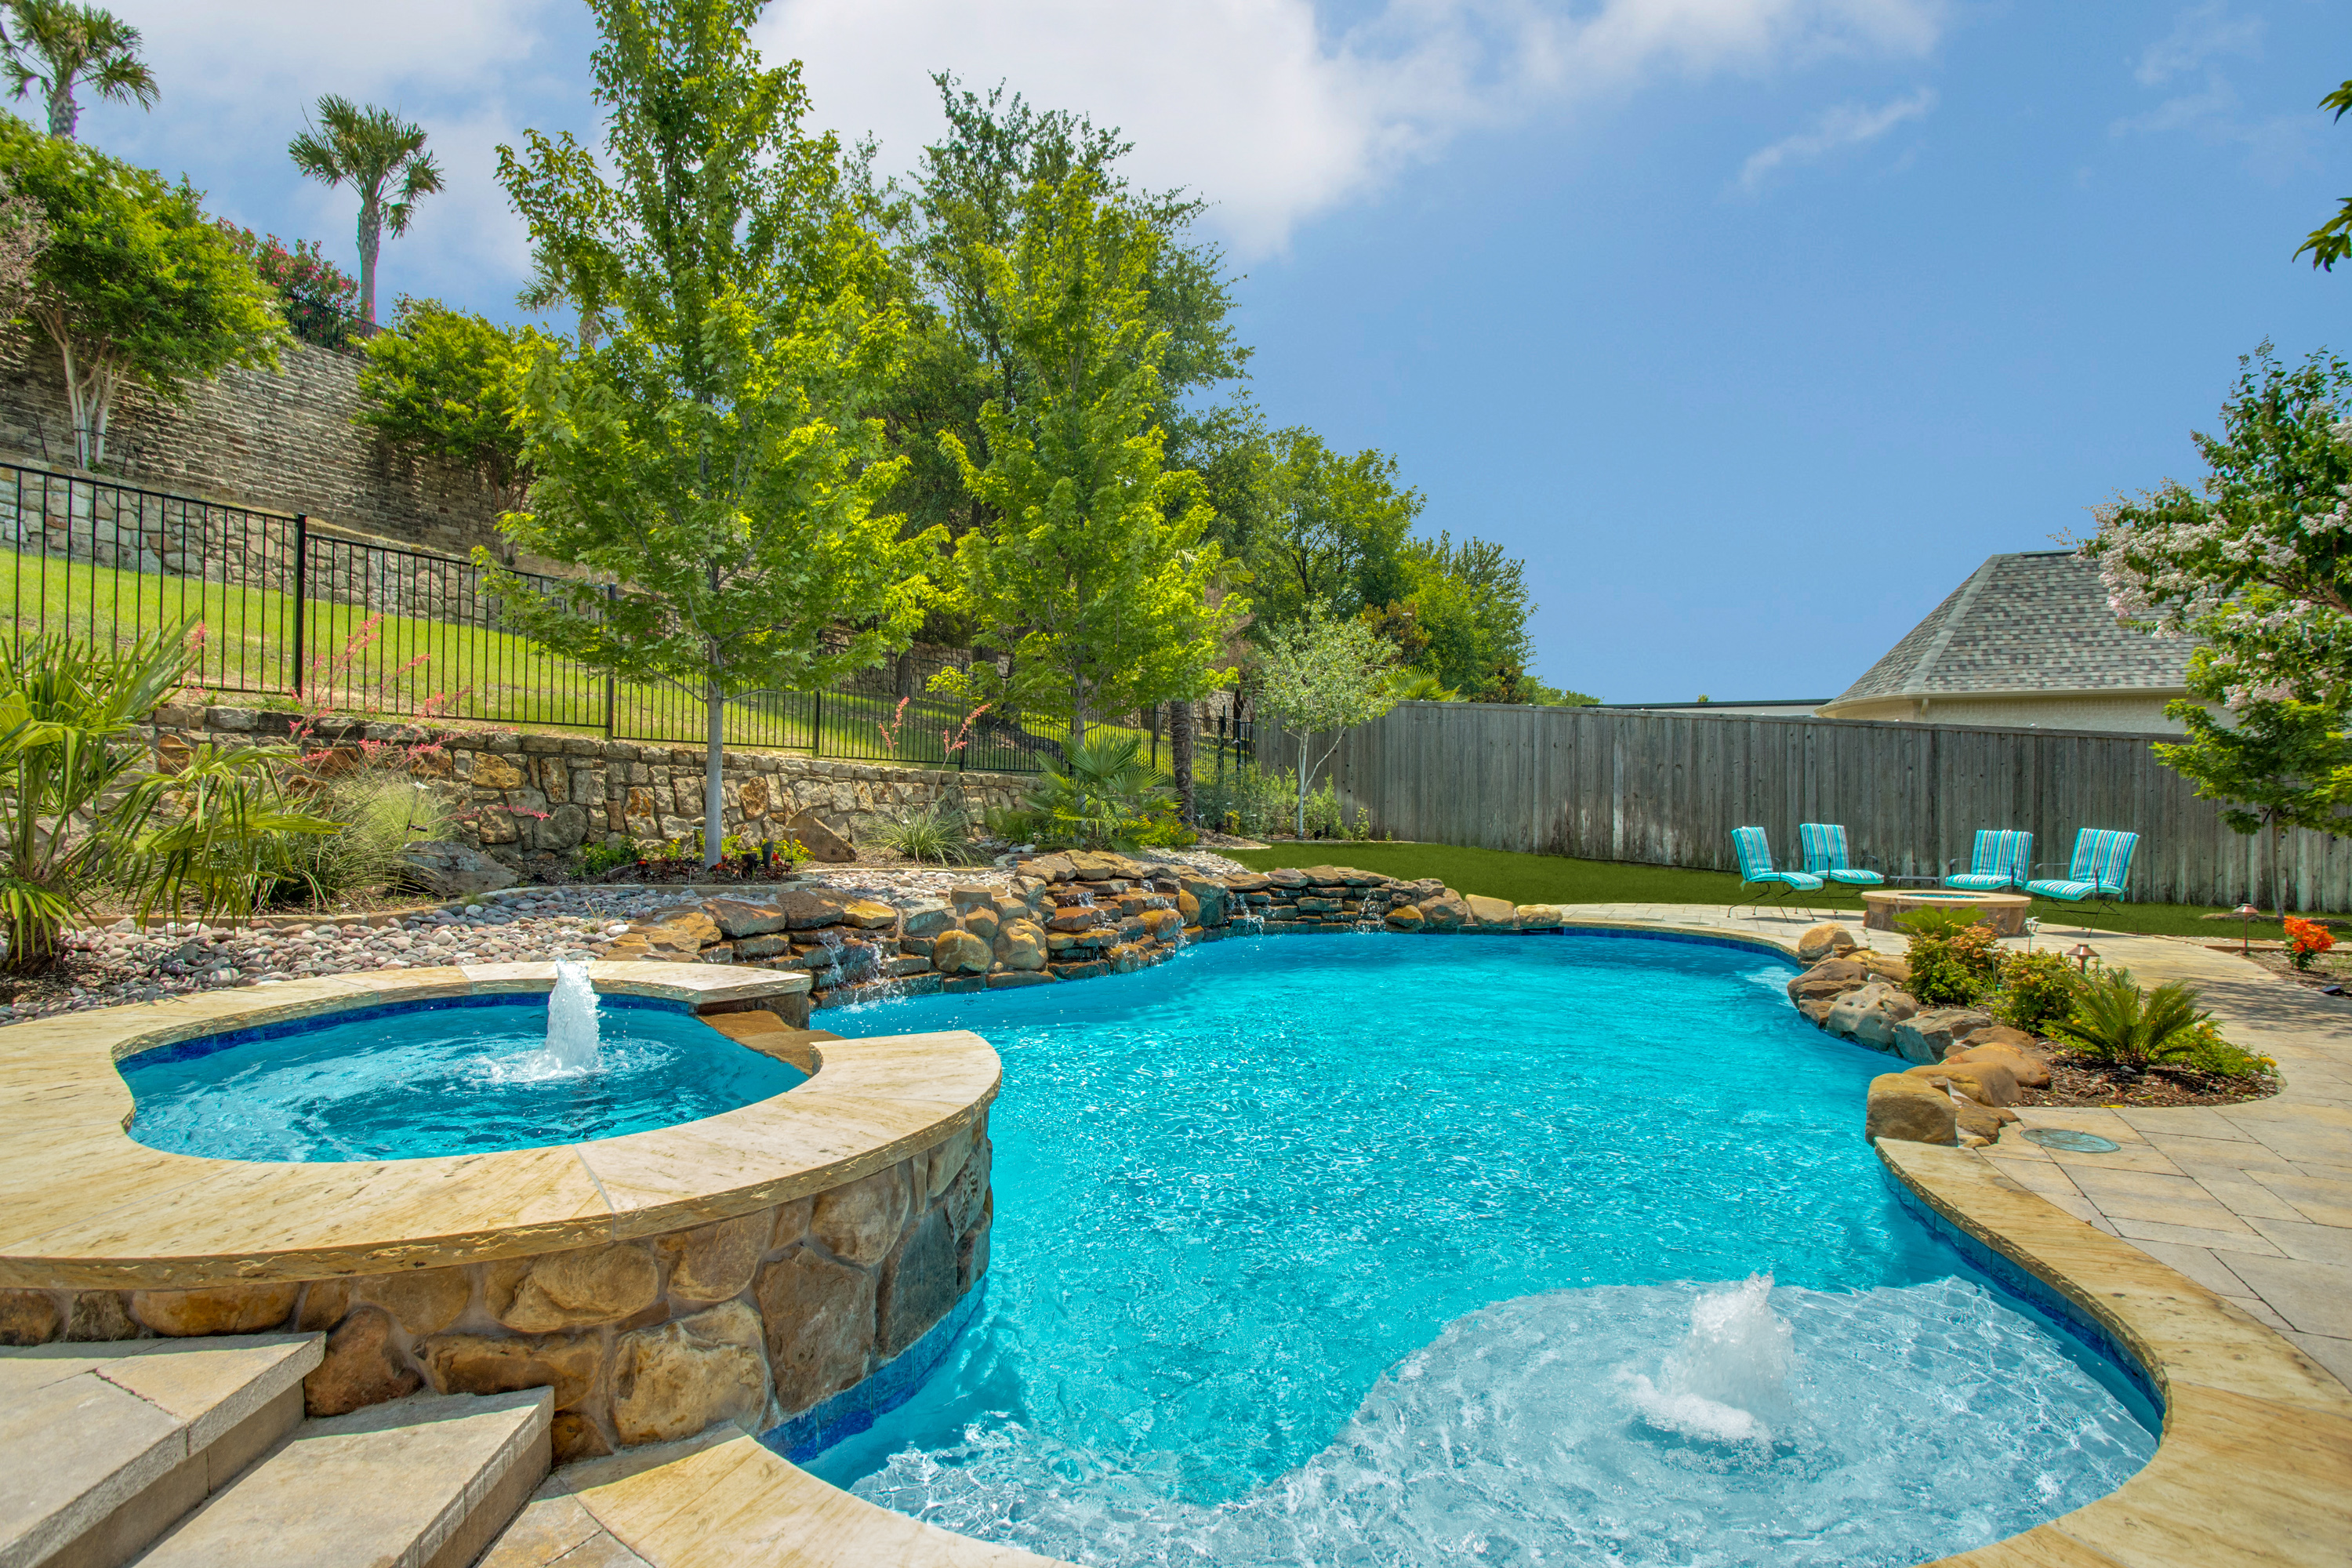 Gold_Medal_Pools-Residential_Pool_Free_Form_Style-Plano-TX-6